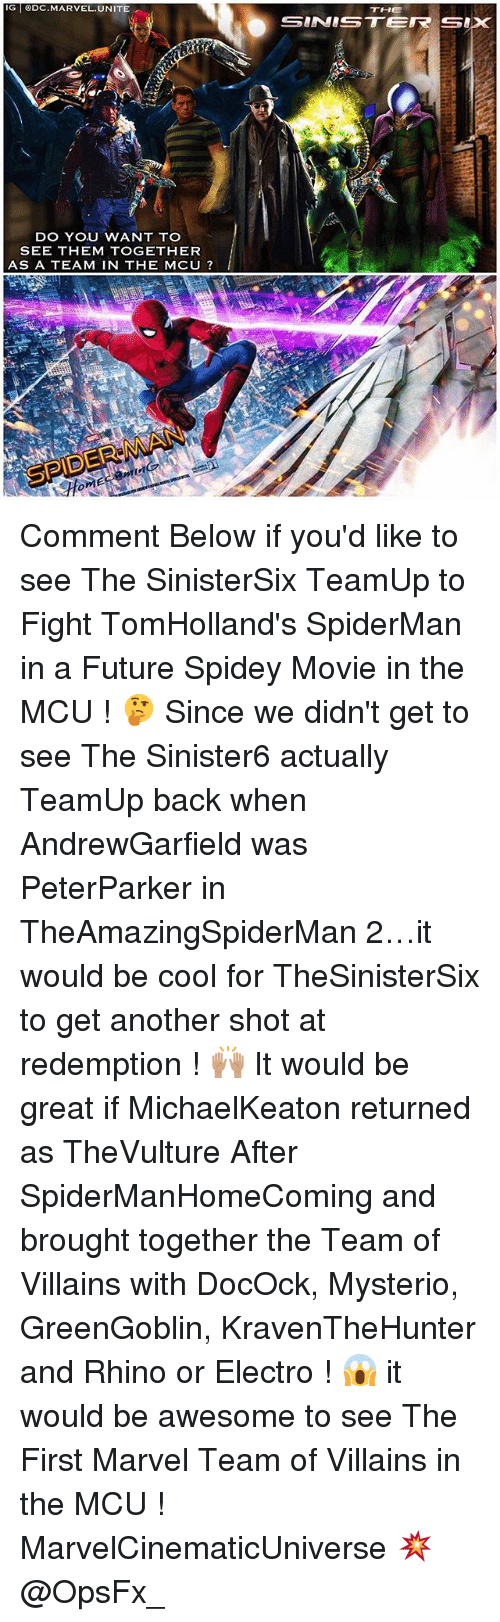 Future, Memes, and Cool: IG ODC.MARVEL.UNITE  THE  DO YOU WANT TO  SEE THEM TOGETHER  AS A TEAM IN THE MCU ? Comment Below if you'd like to see The SinisterSix TeamUp to Fight TomHolland's SpiderMan in a Future Spidey Movie in the MCU ! 🤔 Since we didn't get to see The Sinister6 actually TeamUp back when AndrewGarfield was PeterParker in TheAmazingSpiderMan 2…it would be cool for TheSinisterSix to get another shot at redemption ! 🙌🏽 It would be great if MichaelKeaton returned as TheVulture After SpiderManHomeComing and brought together the Team of Villains with DocOck, Mysterio, GreenGoblin, KravenTheHunter and Rhino or Electro ! 😱 it would be awesome to see The First Marvel Team of Villains in the MCU ! MarvelCinematicUniverse 💥 @OpsFx_